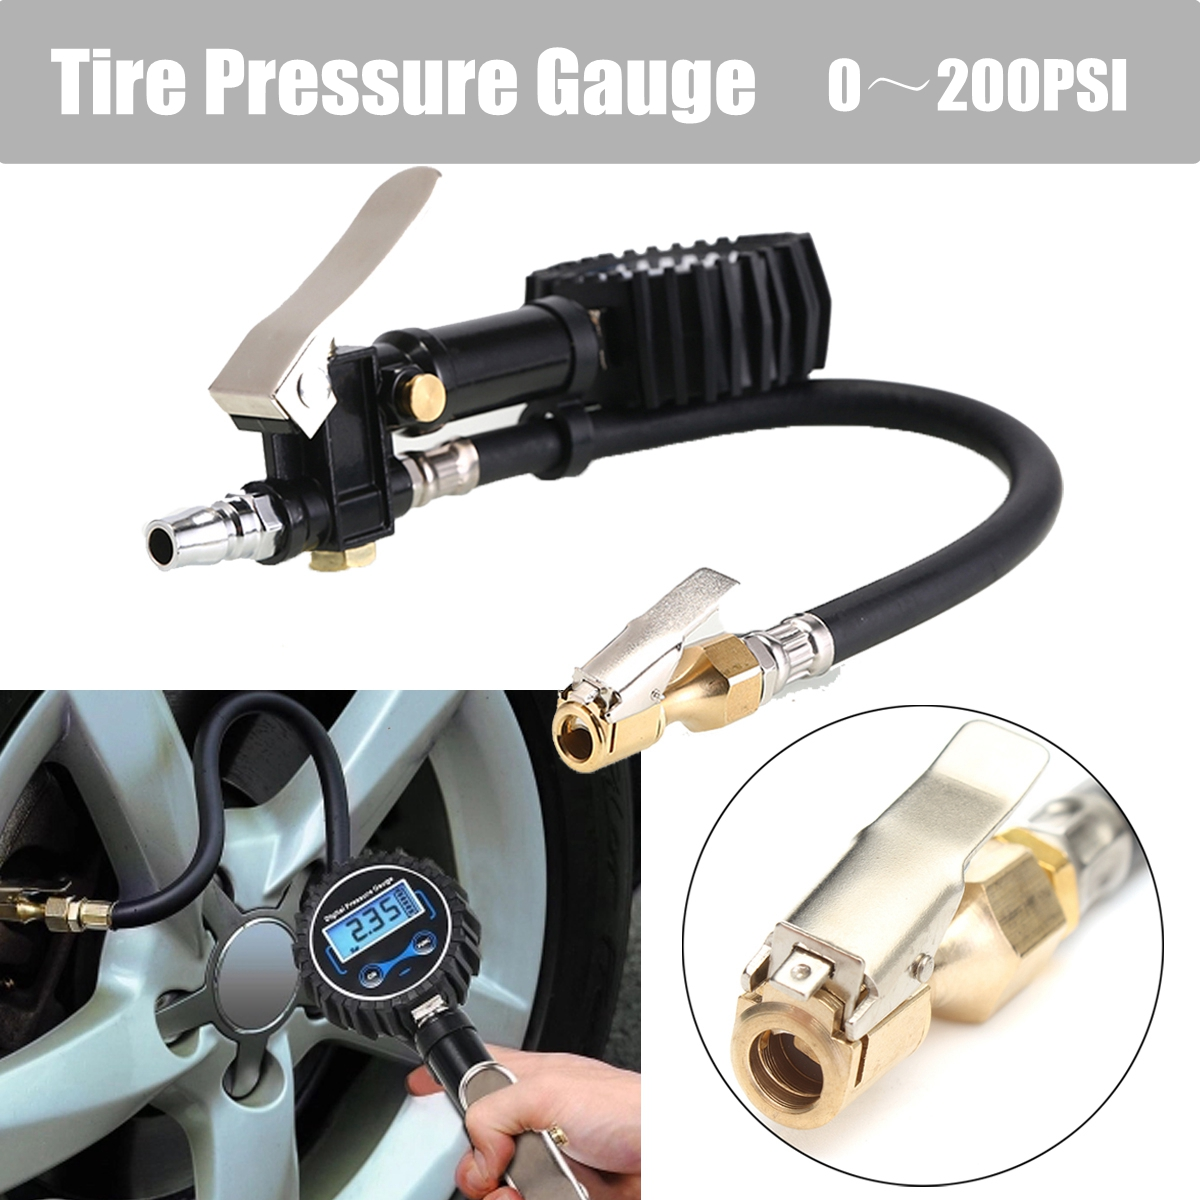 Digital Car Truck Tyre Inflation for Guns Monitoring Tool Air Tire Pressure Inflator Gauge LCD Display Dial Meter Vehicle Tester 2016 new hot universal auto motor car truck bike tyre tire air pressure gauge dial meter vehicle tester free shipping